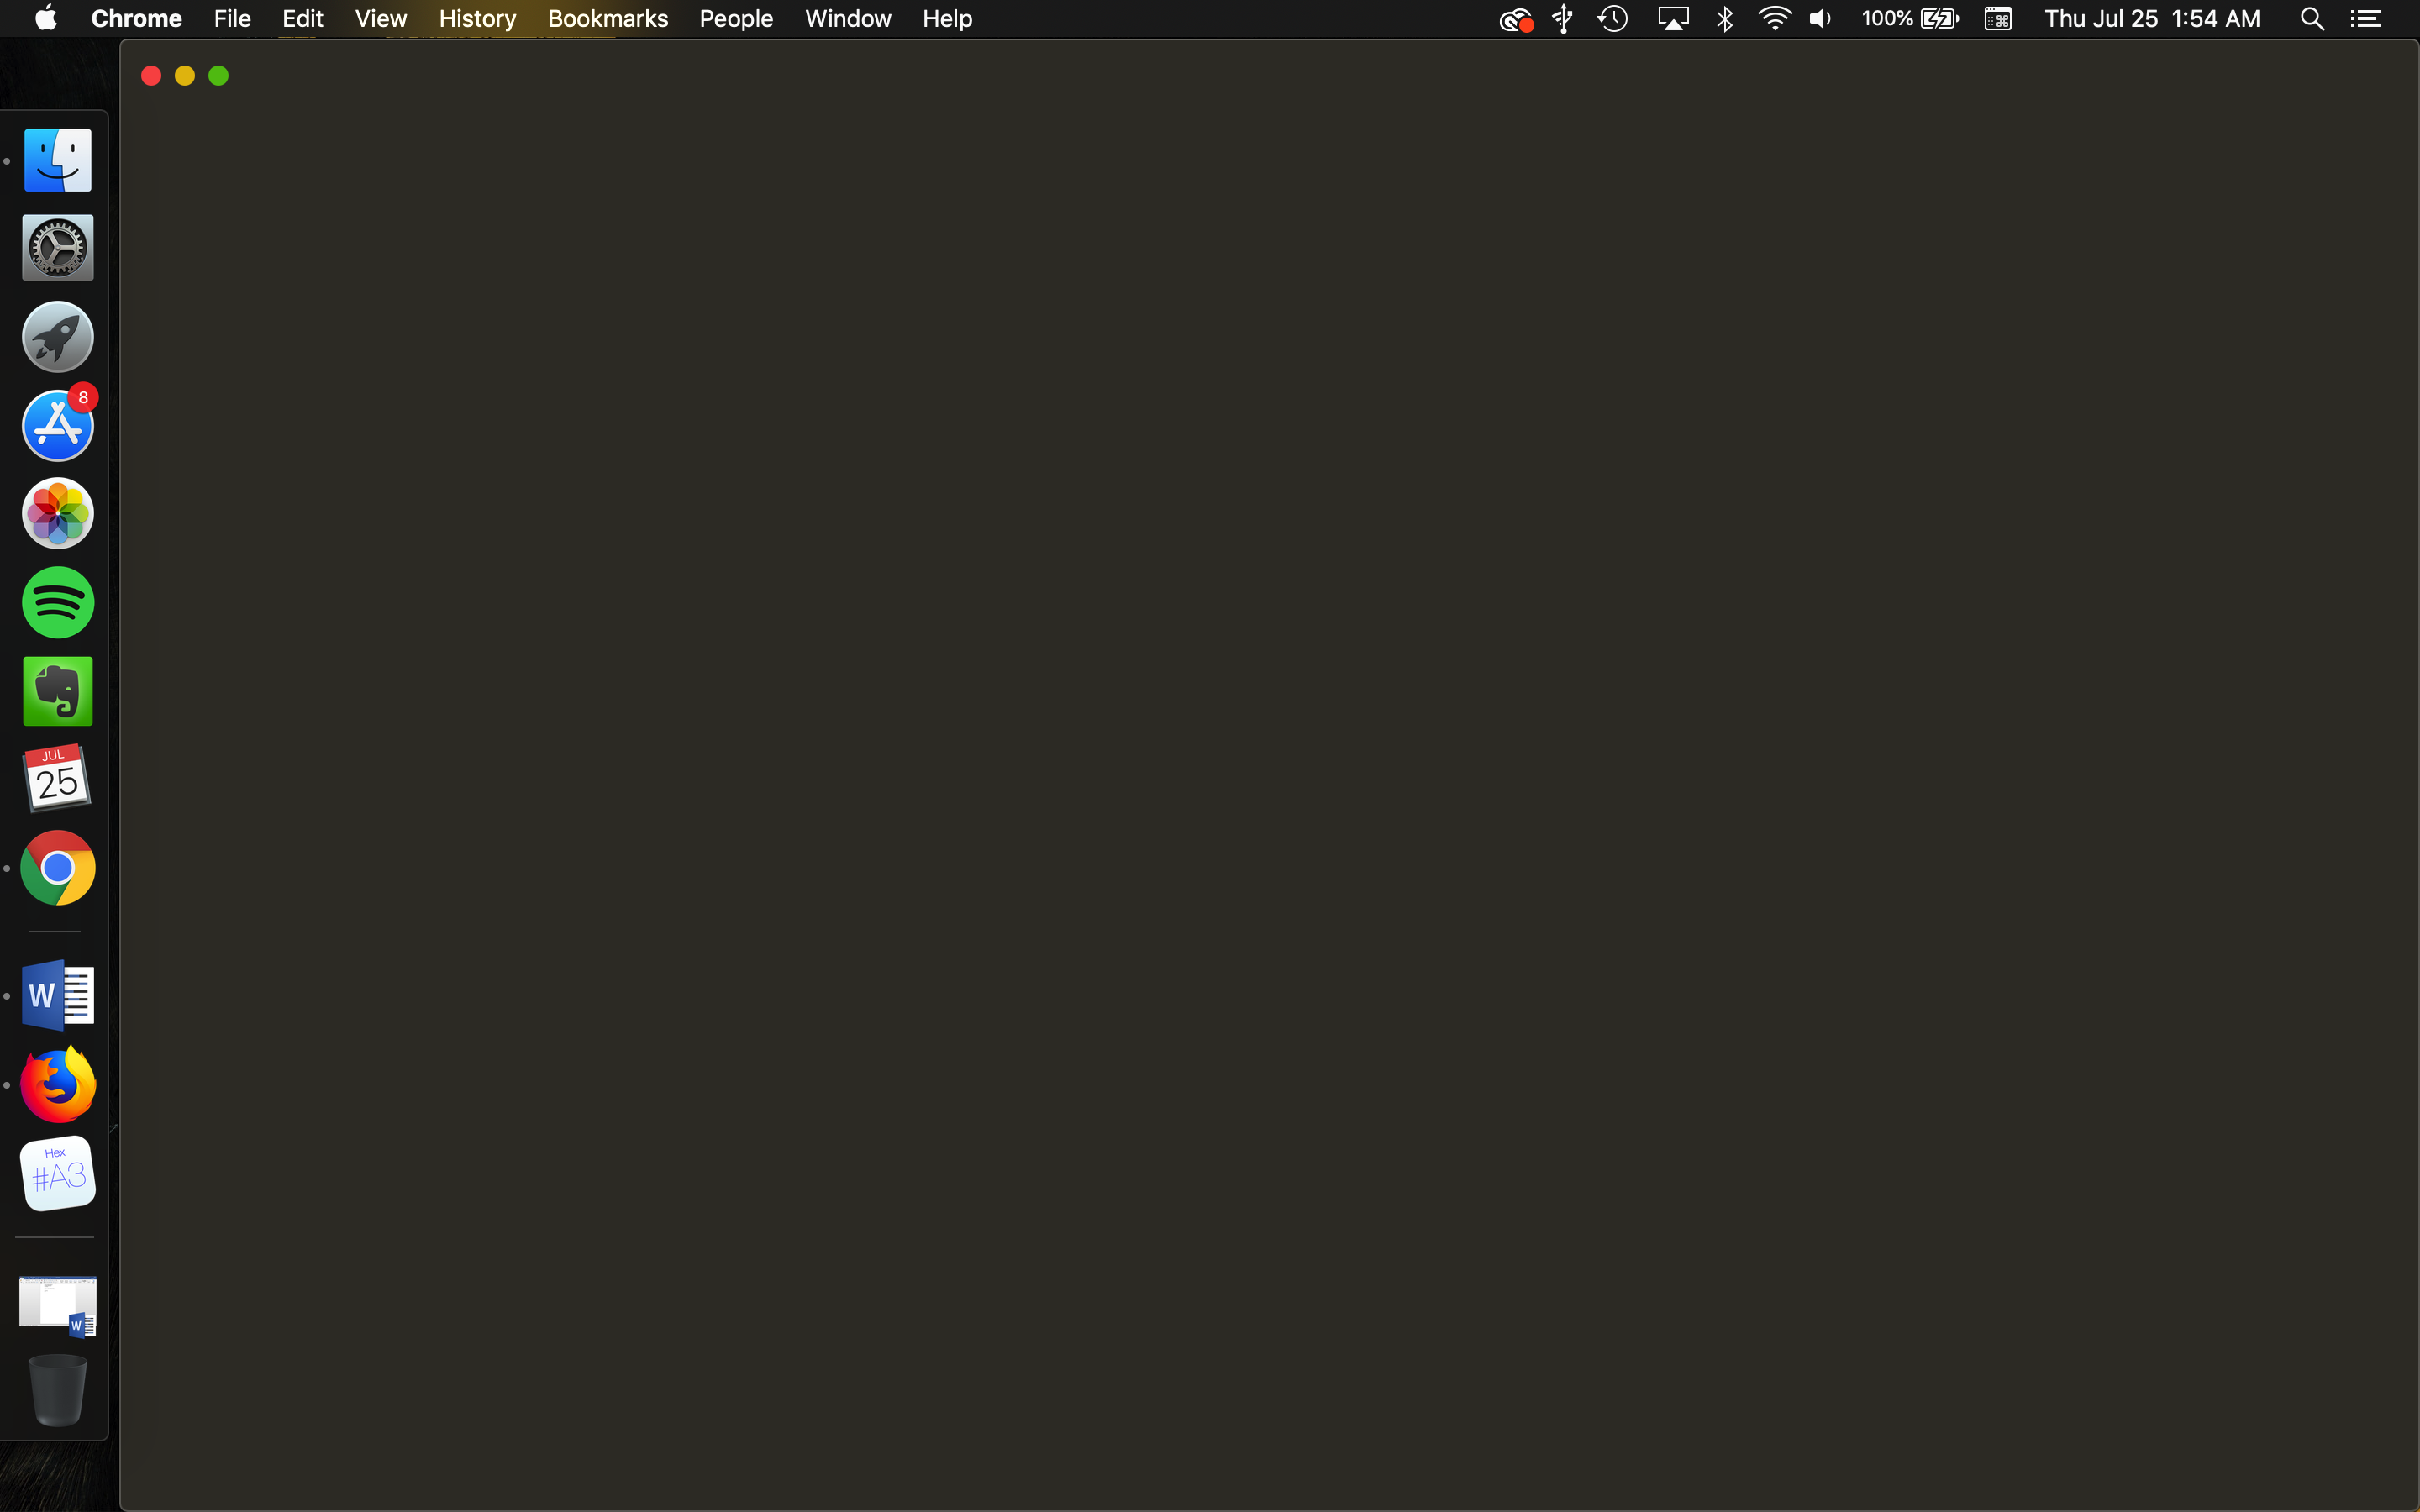 Blank screen on Google Chrome when opening on Mac (Mojave